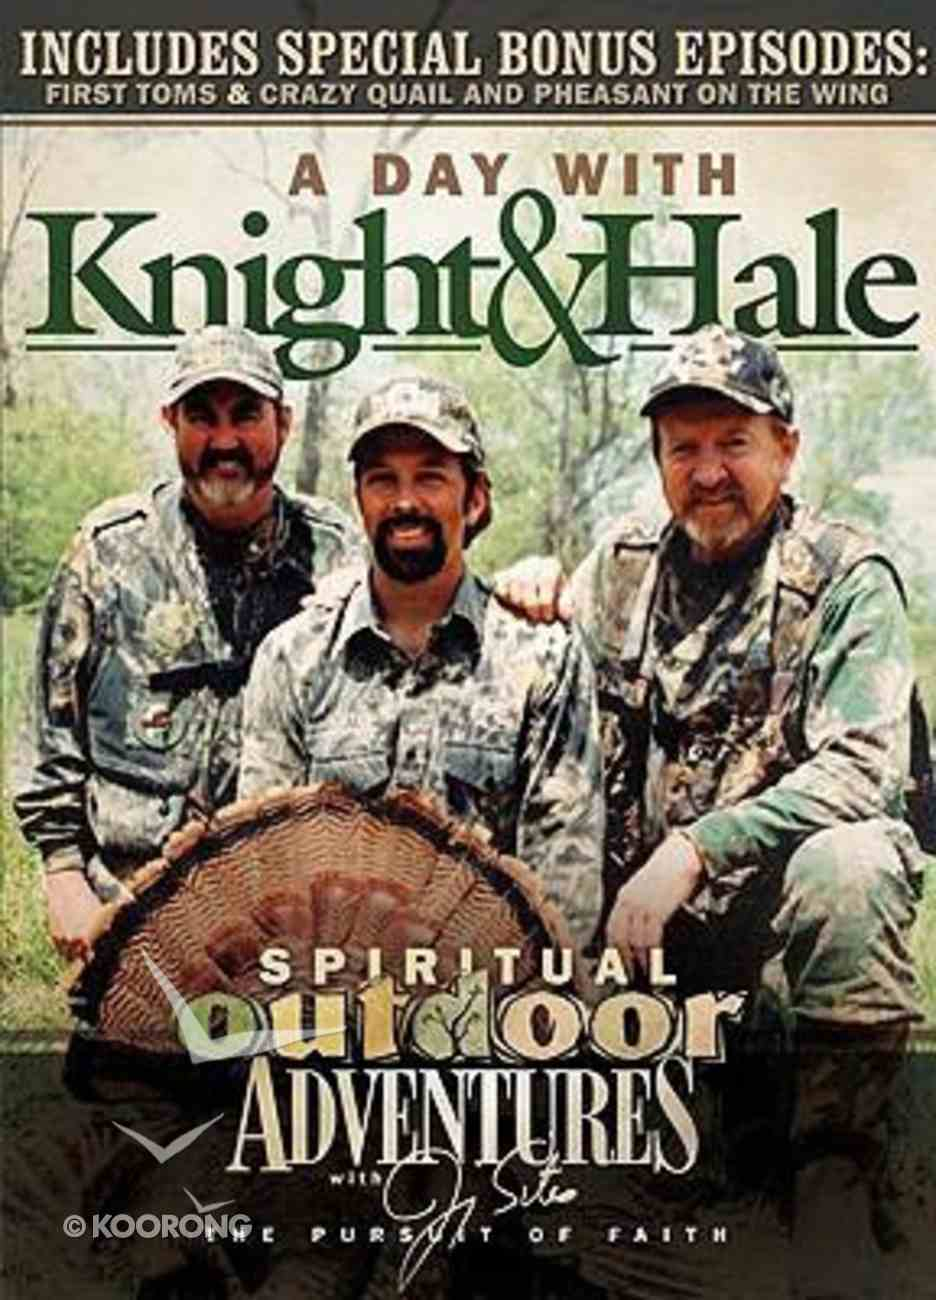 A Day With Knight and Hale (Spiritual Outdoor Adventure Series) DVD